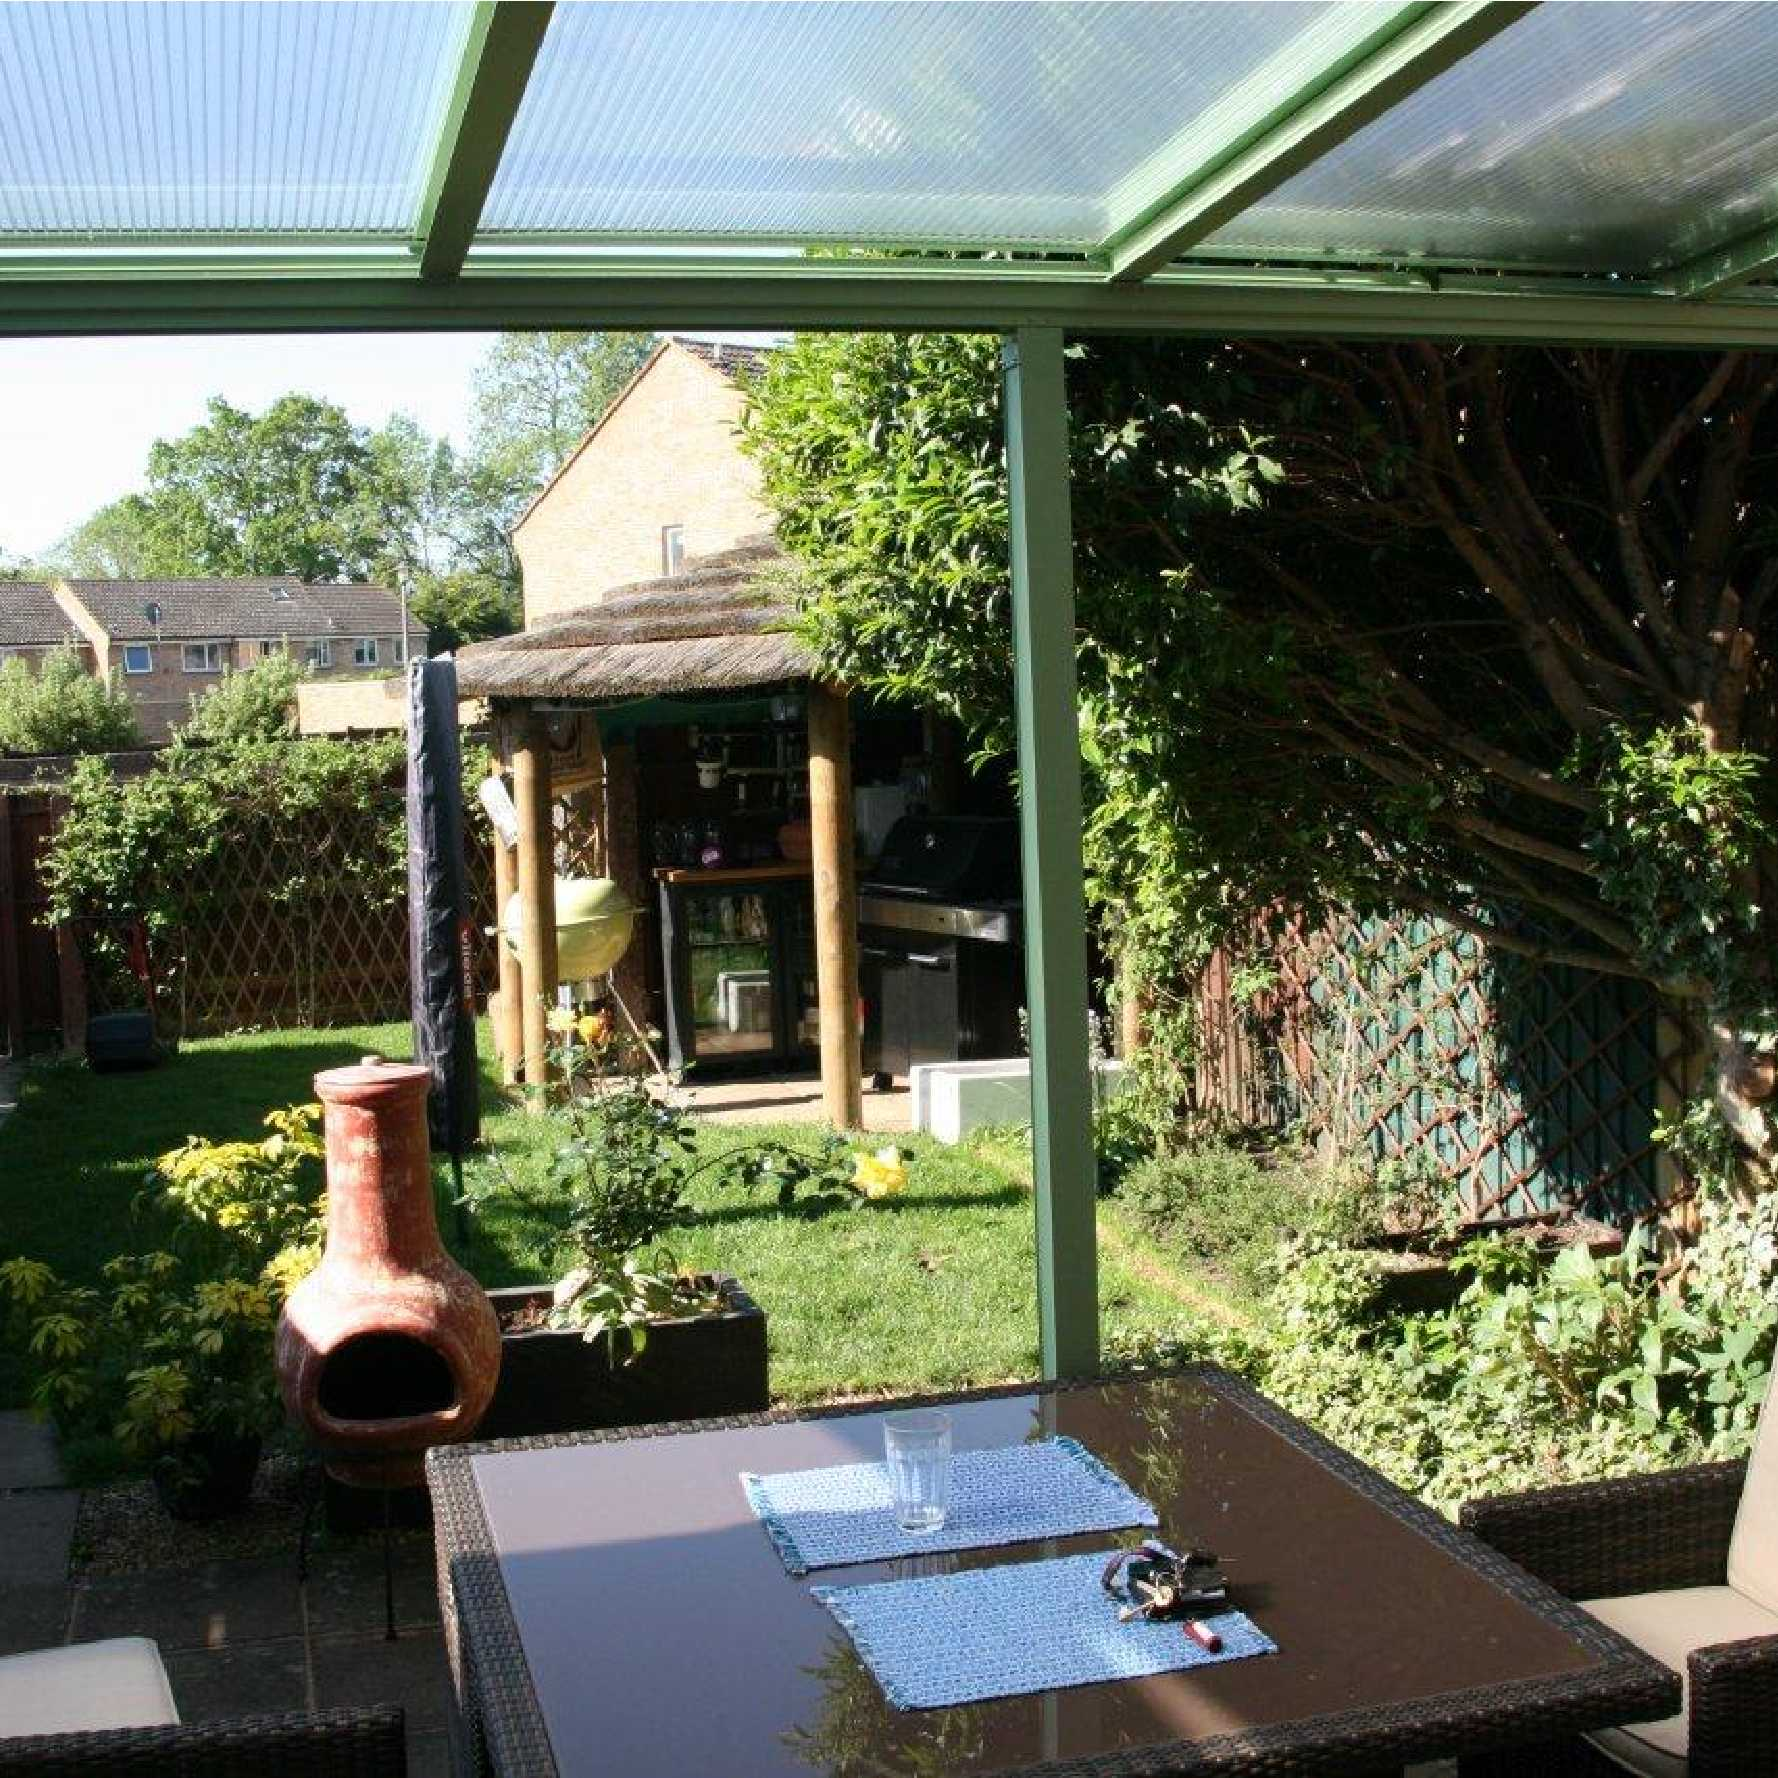 Affordable Omega Smart White Lean-To Canopy with 16mm Polycarbonate Glazing - 6.0m (W) x 2.0m (P), (3) Supporting Posts